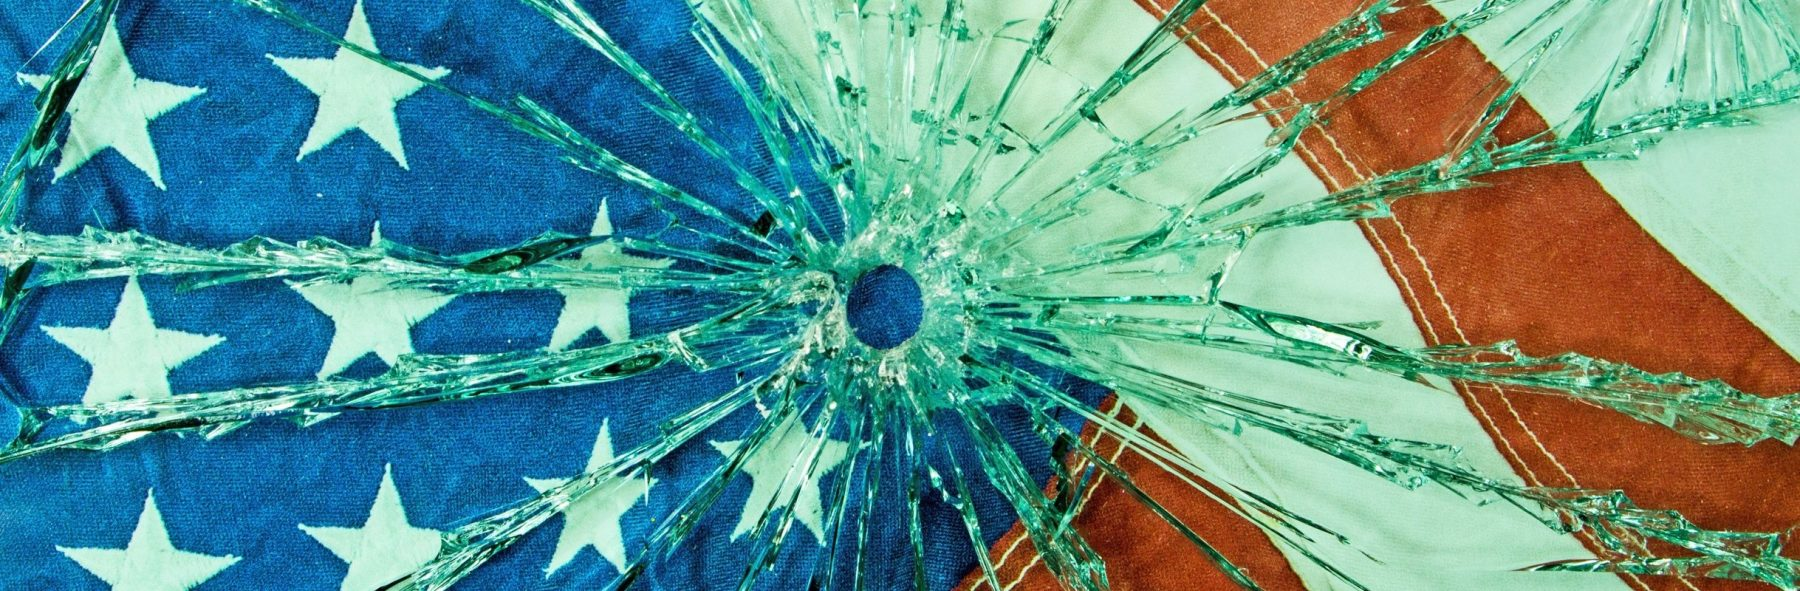 A safety glass with a bullet hole through the glass. (Getty Images)